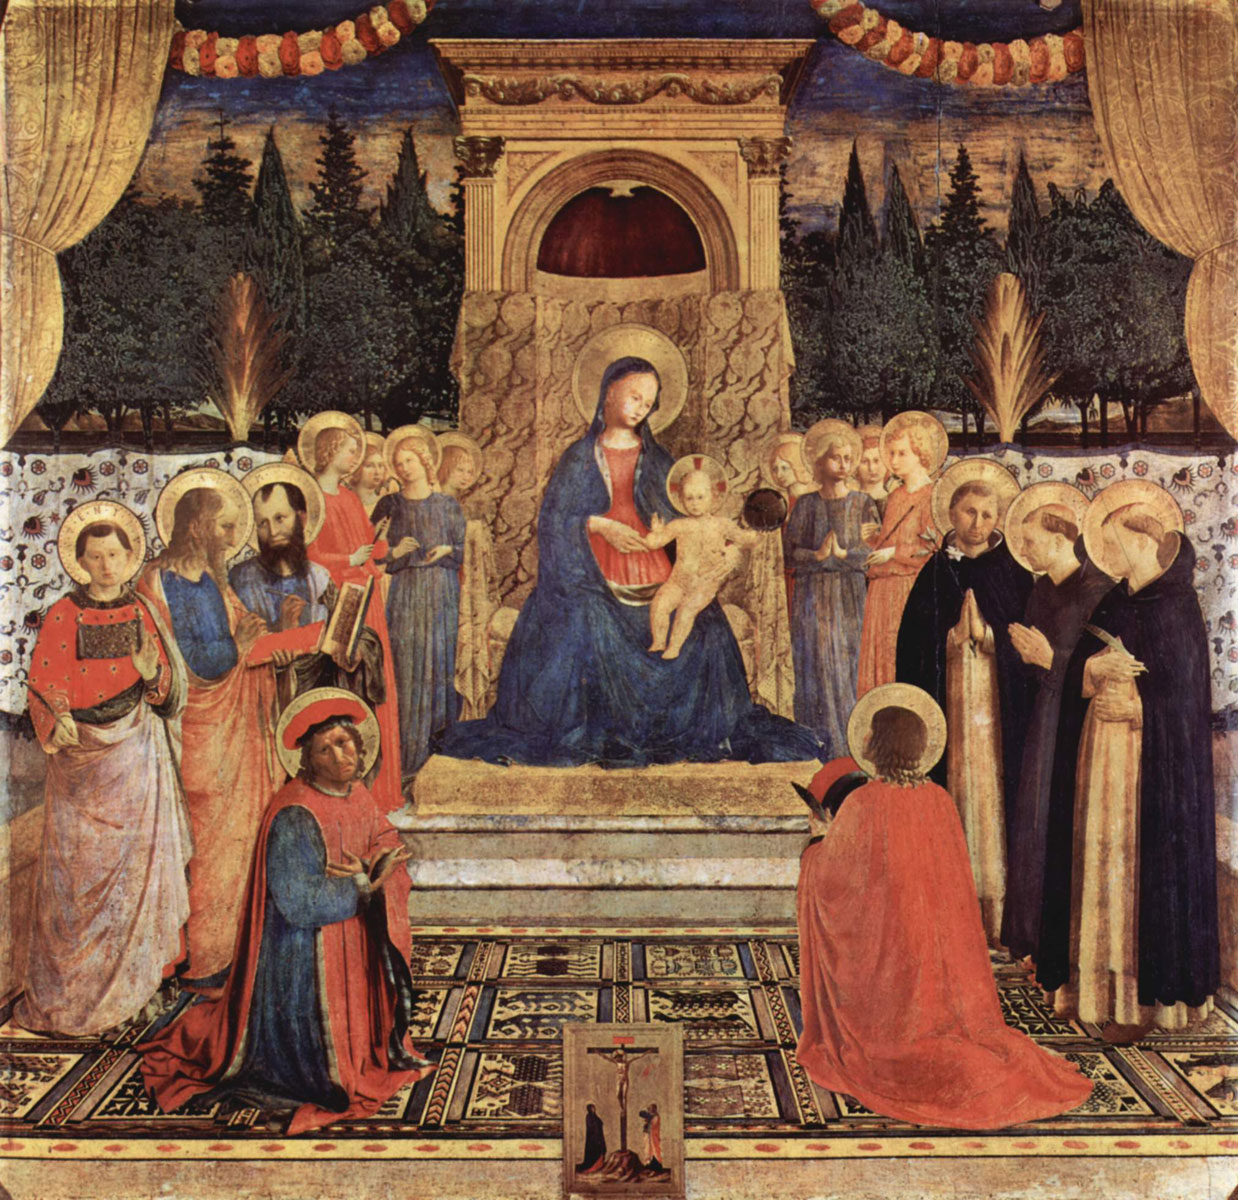 San Marco Altarpiece by Fra Angelico